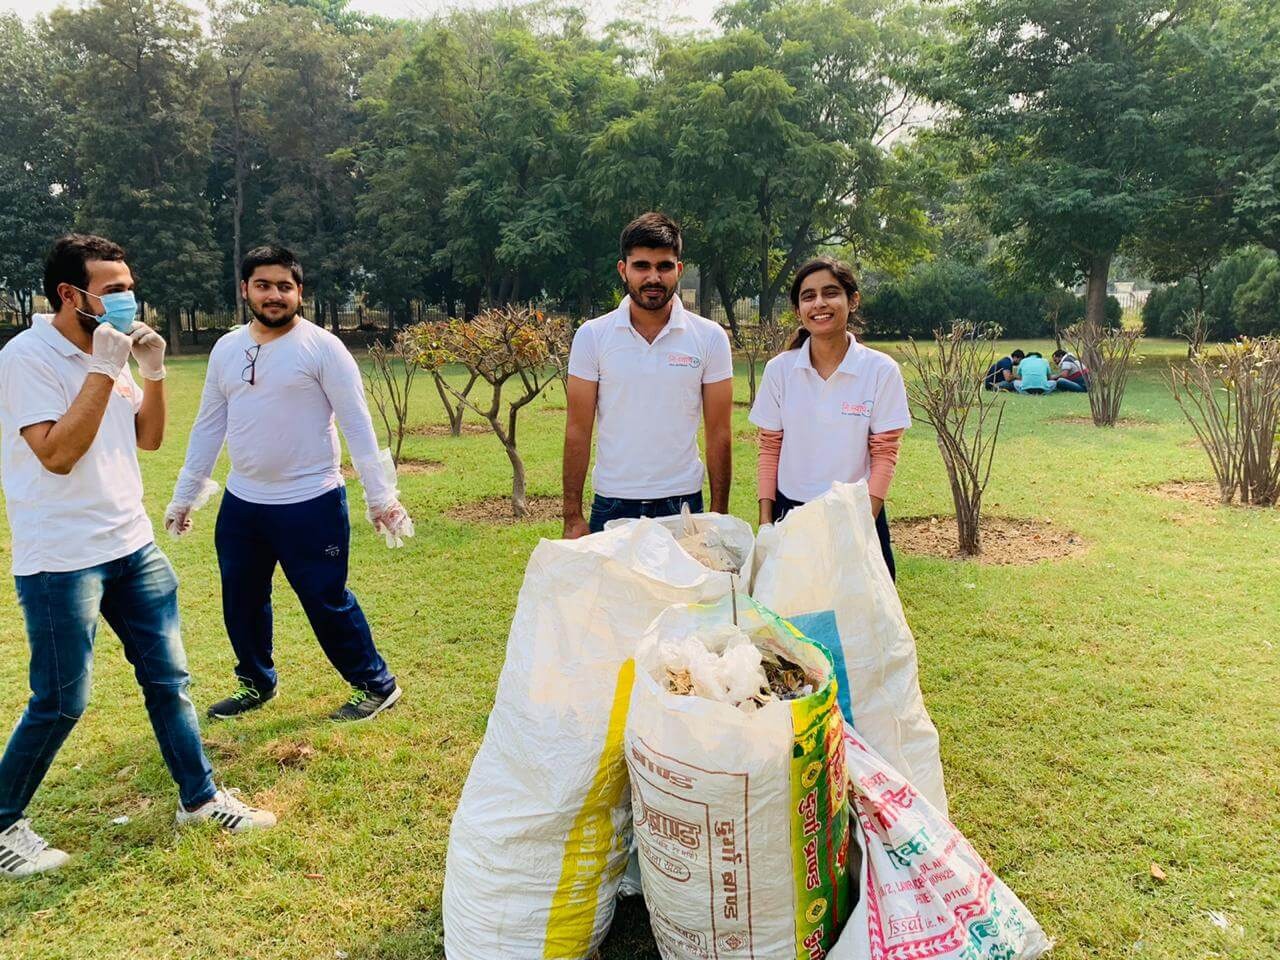 October 25 2020 - Central Park Cleanliness Drive - 5